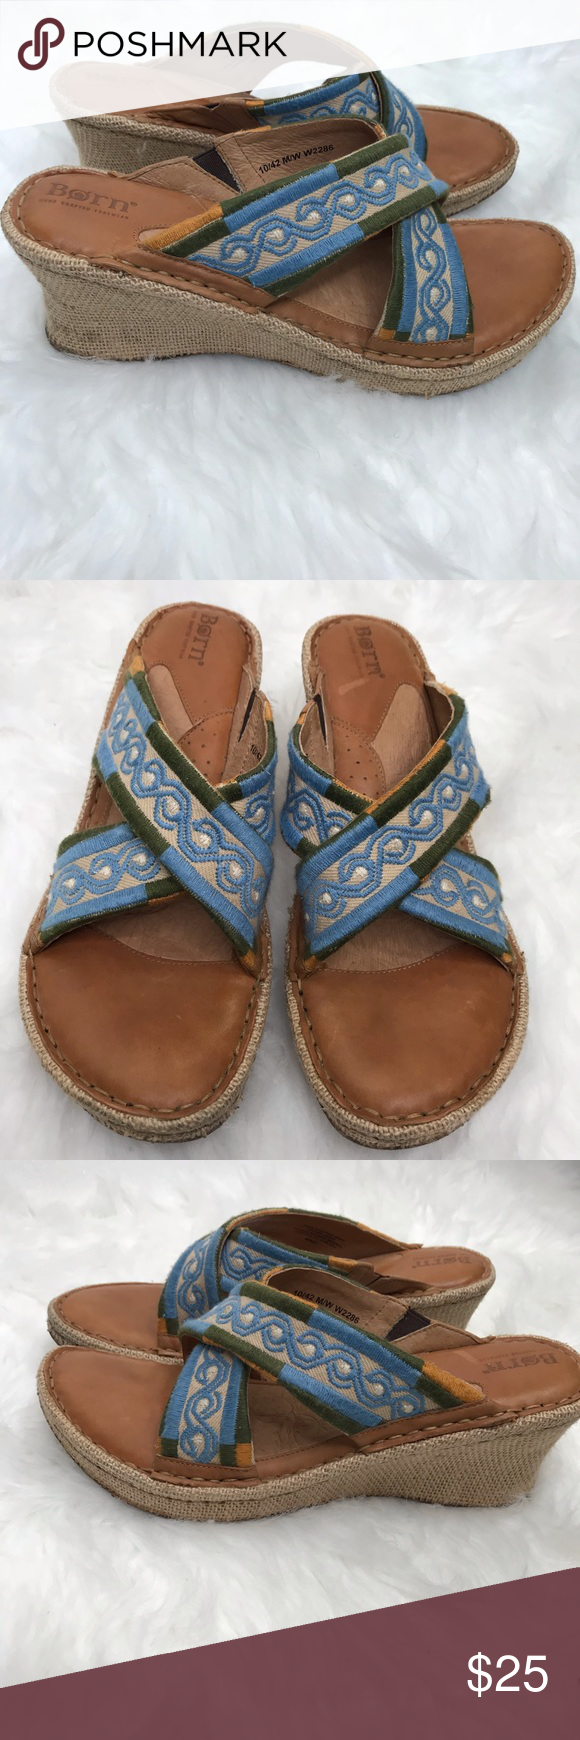 a73a96b51230 Born Wedge Slip Ons Size 10 Good Used Condition Gently Used Born Shoes  Wedges